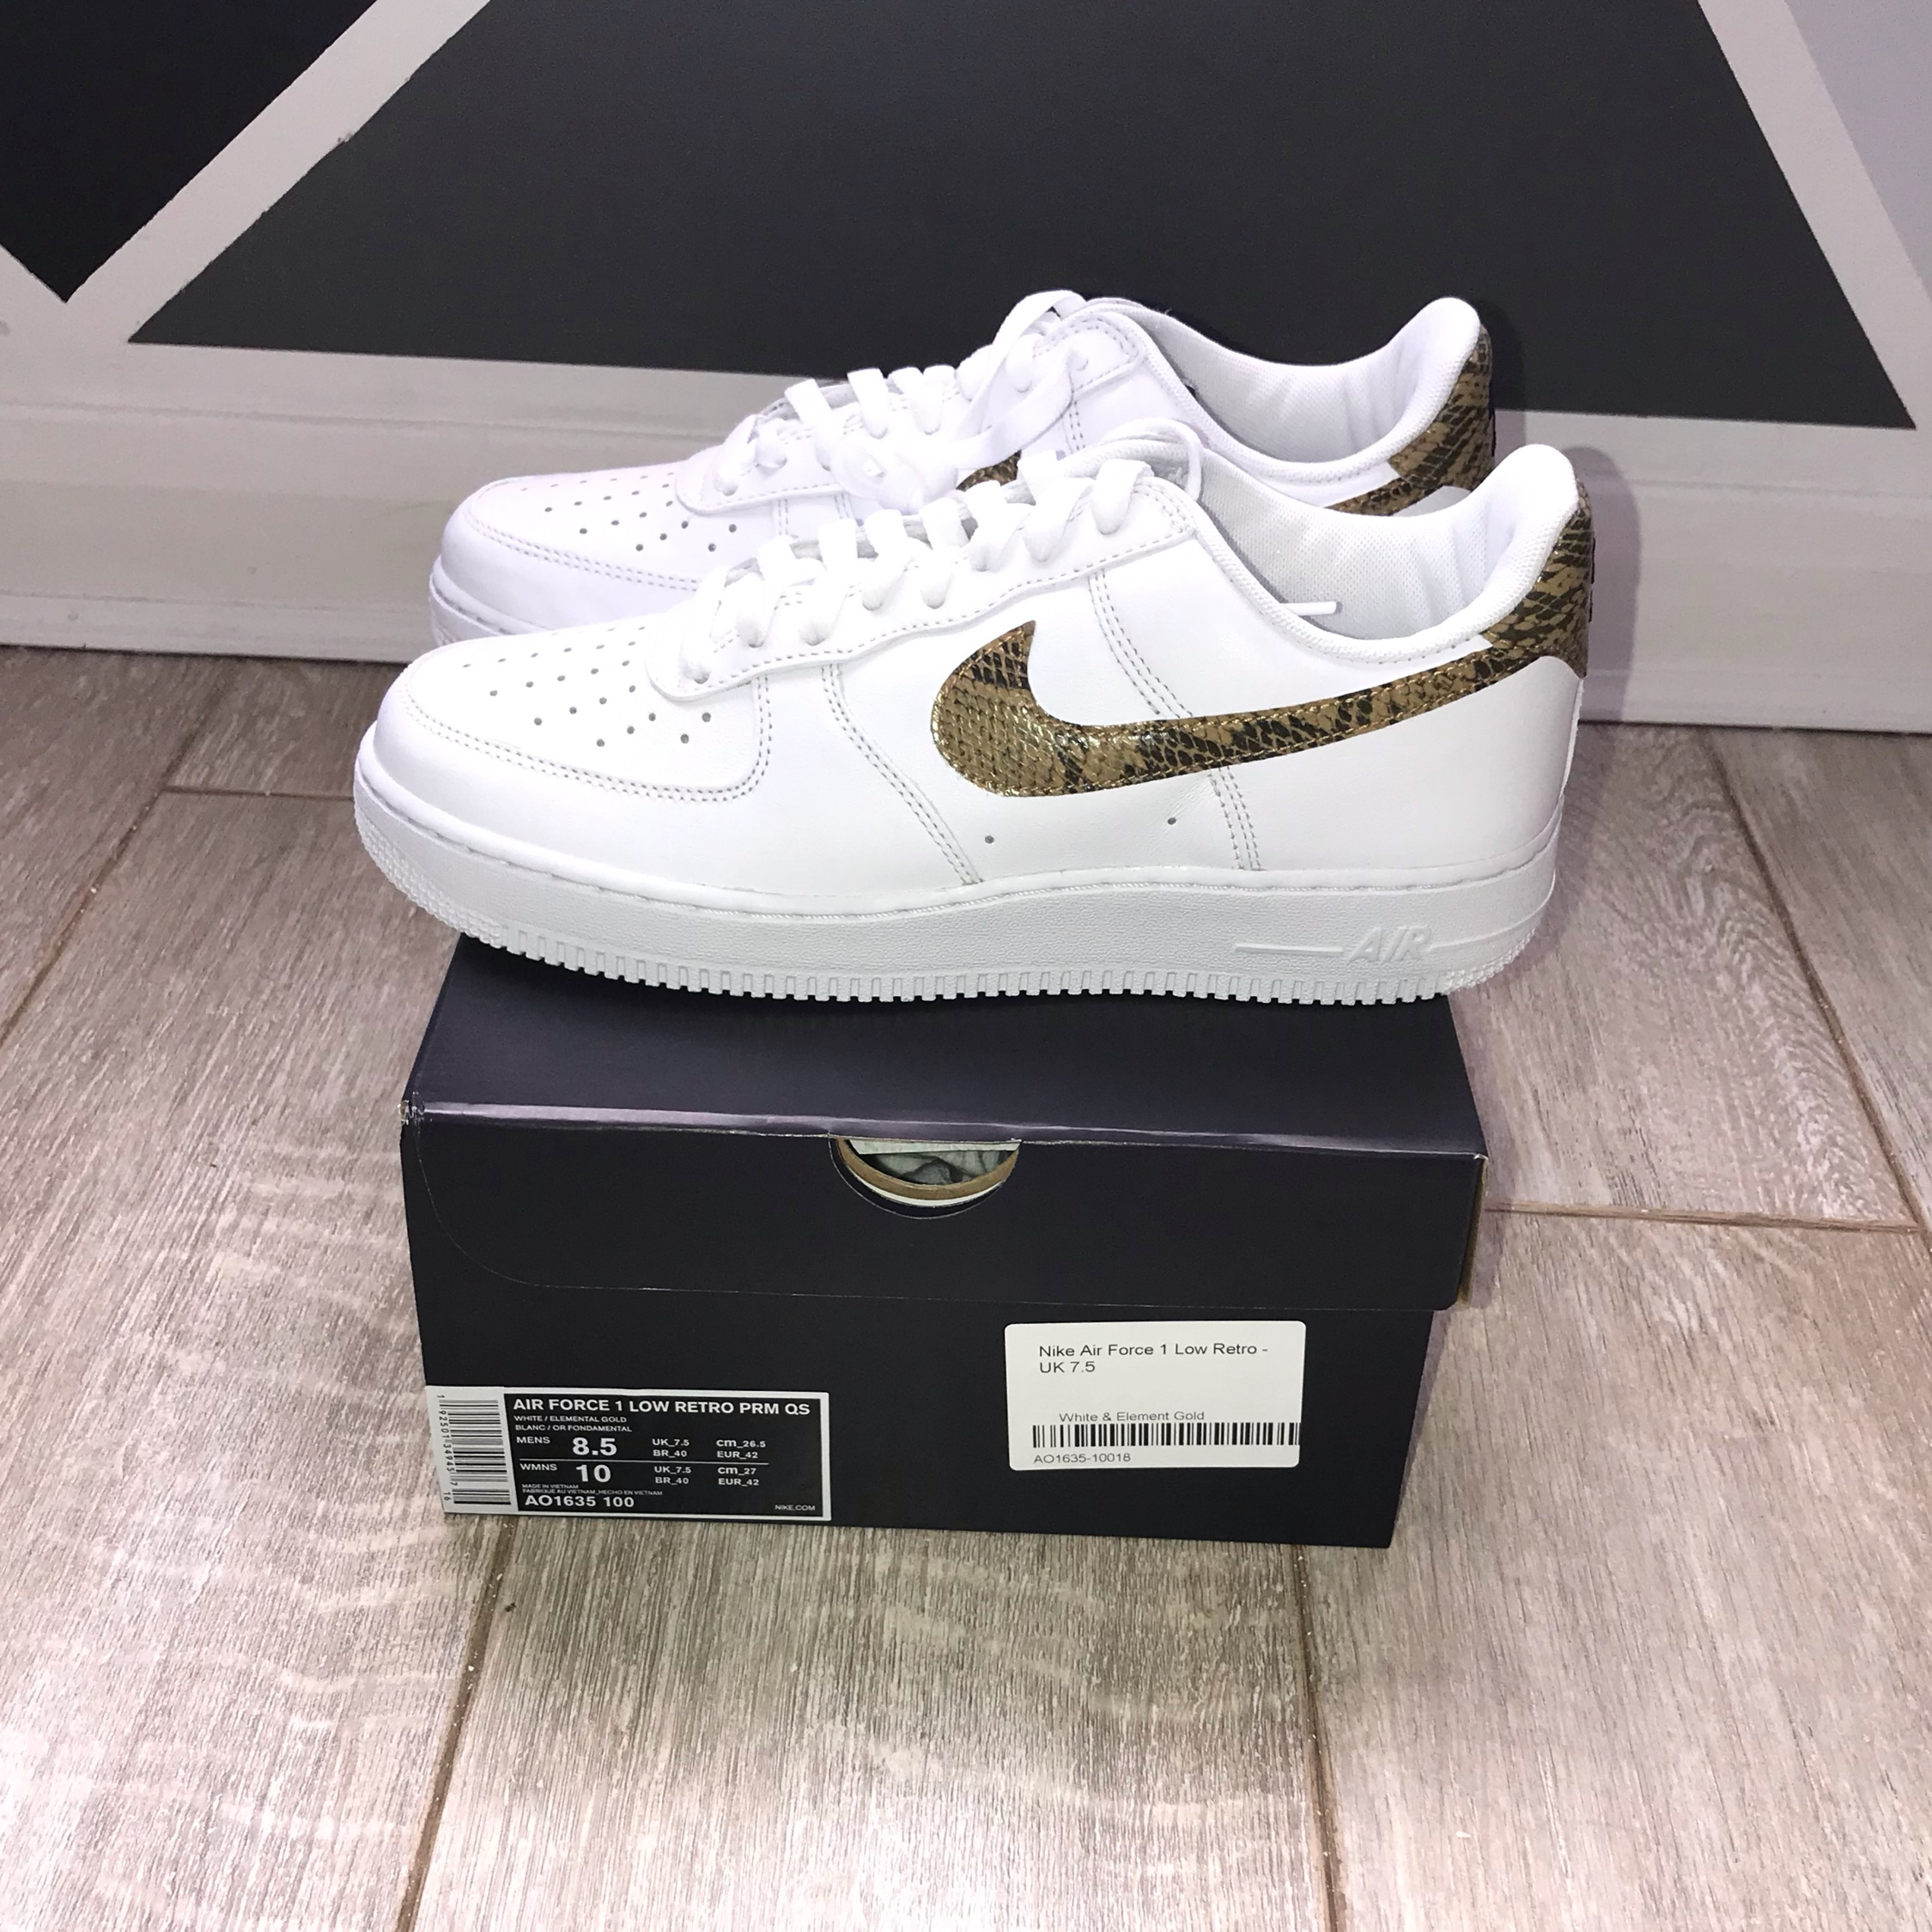 Nike Air Force 1 Low Retro Ivory Snake (2019)